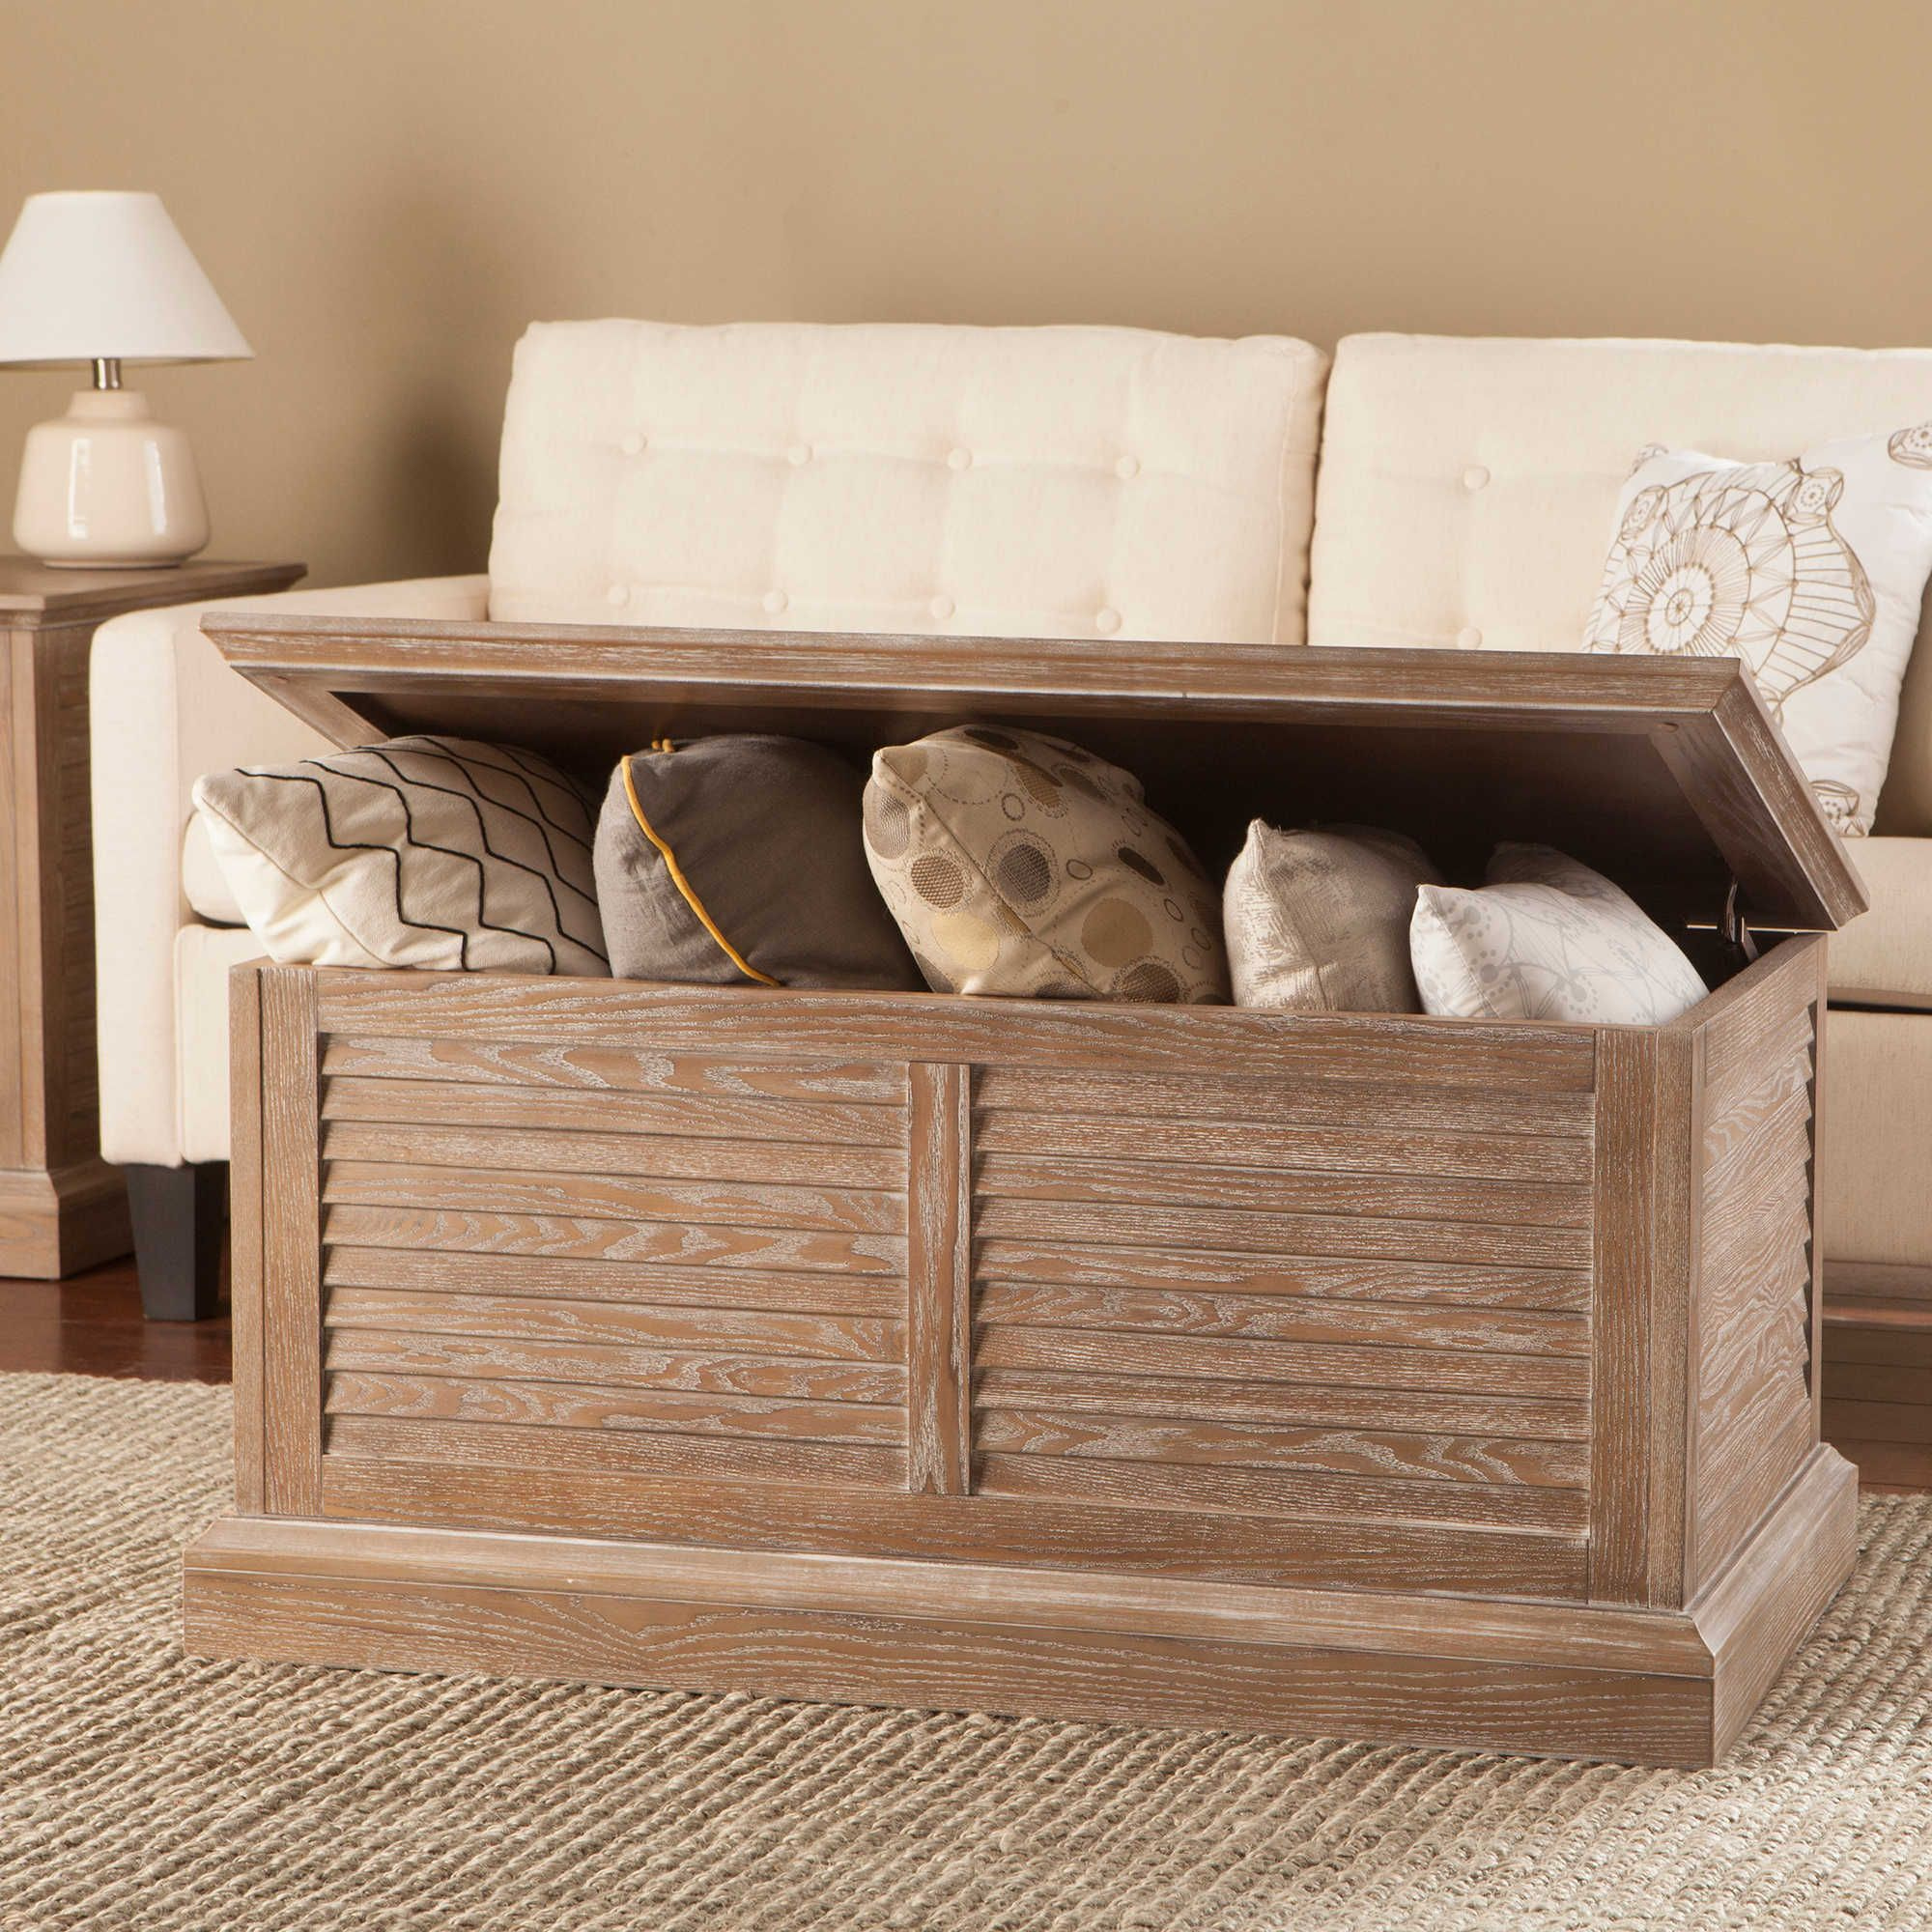 34+ Vintage trunk coffee table cheap trends